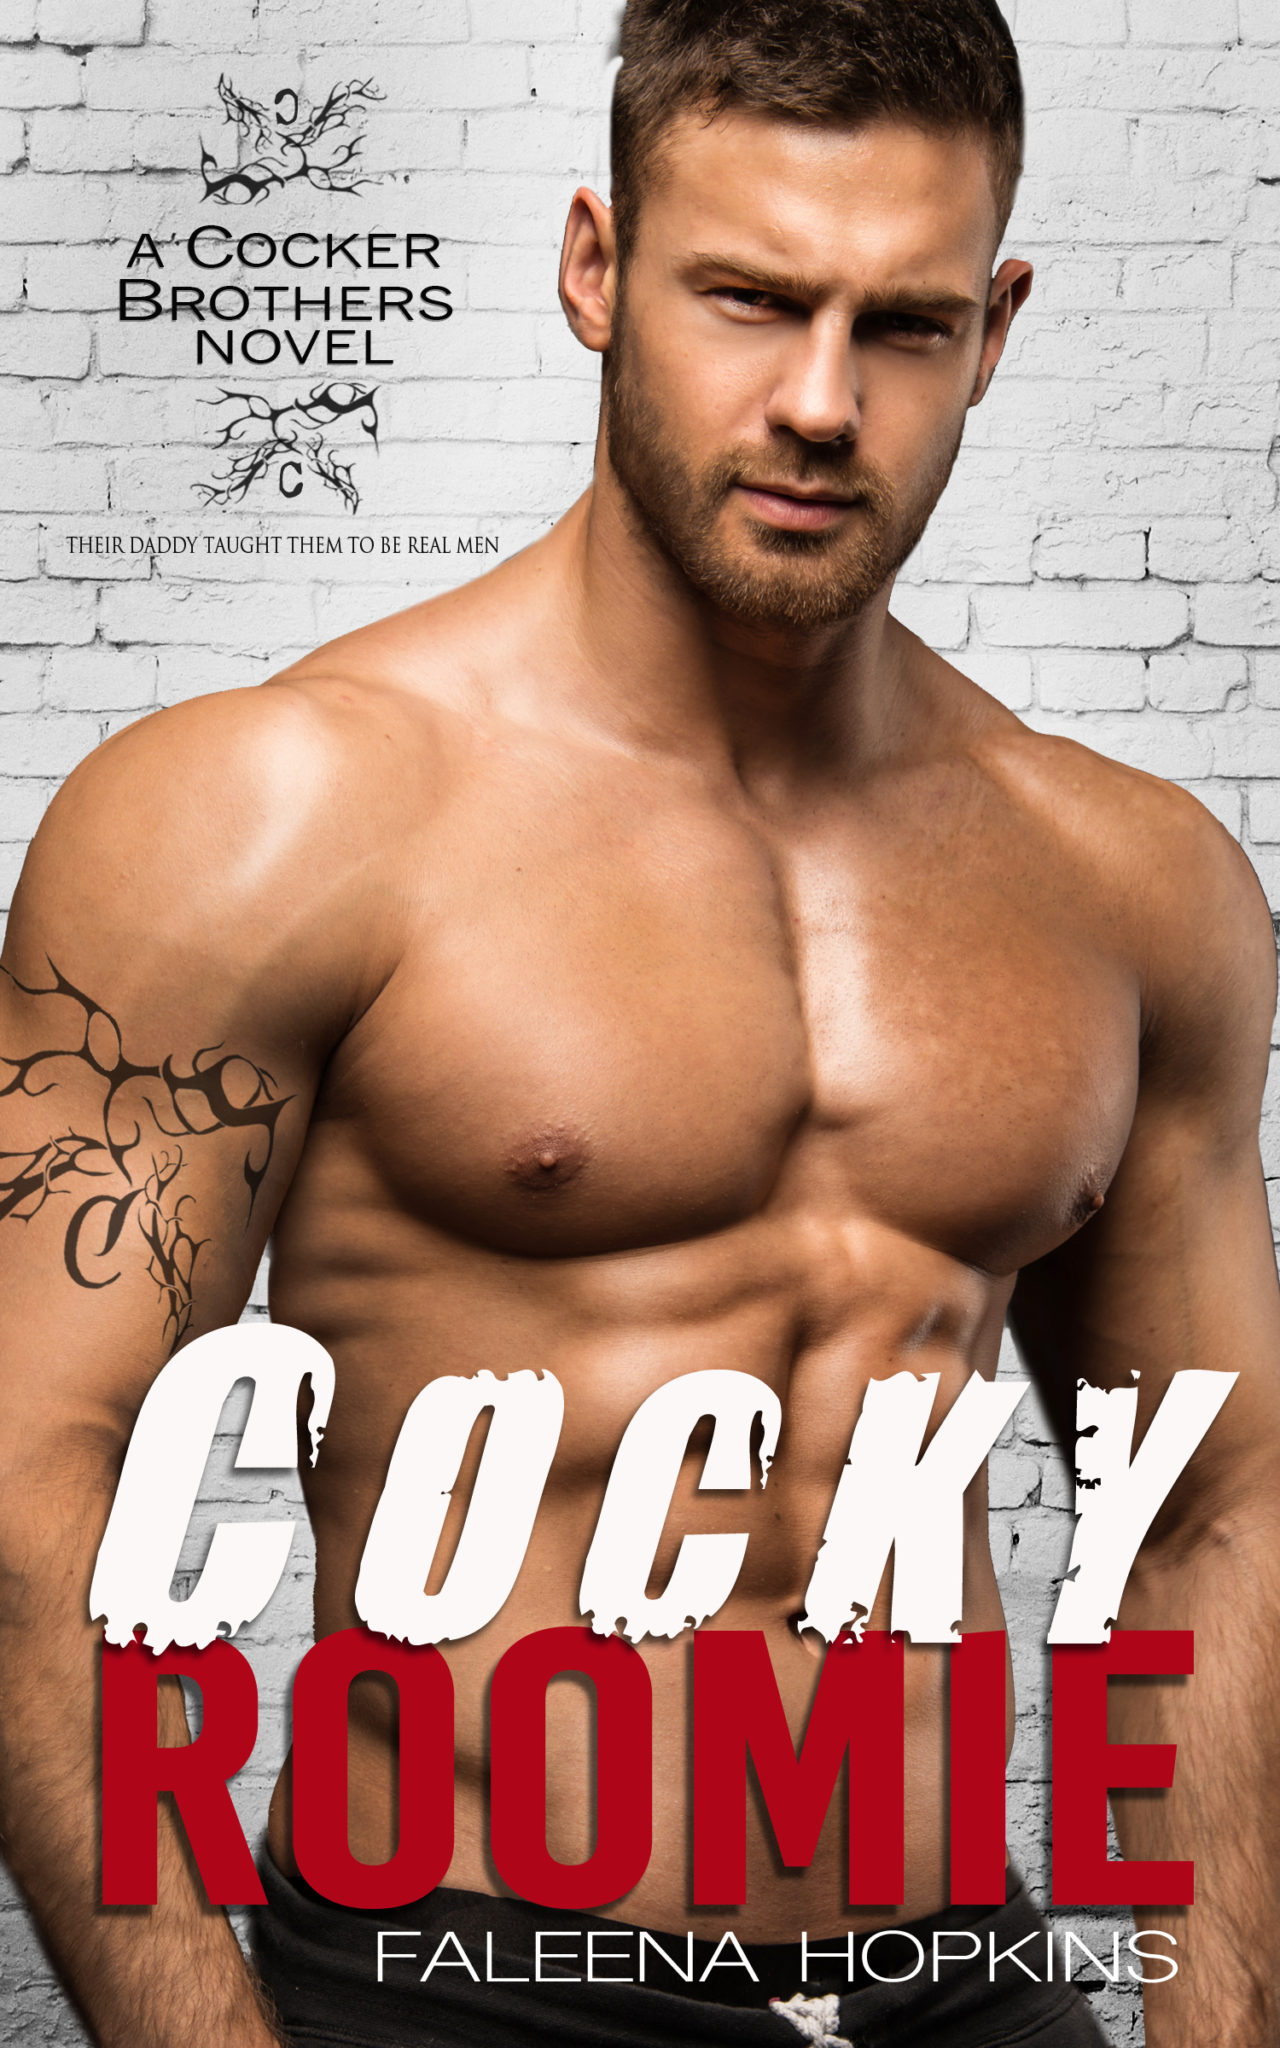 free cocky roomie by faleena hopkins lovely books